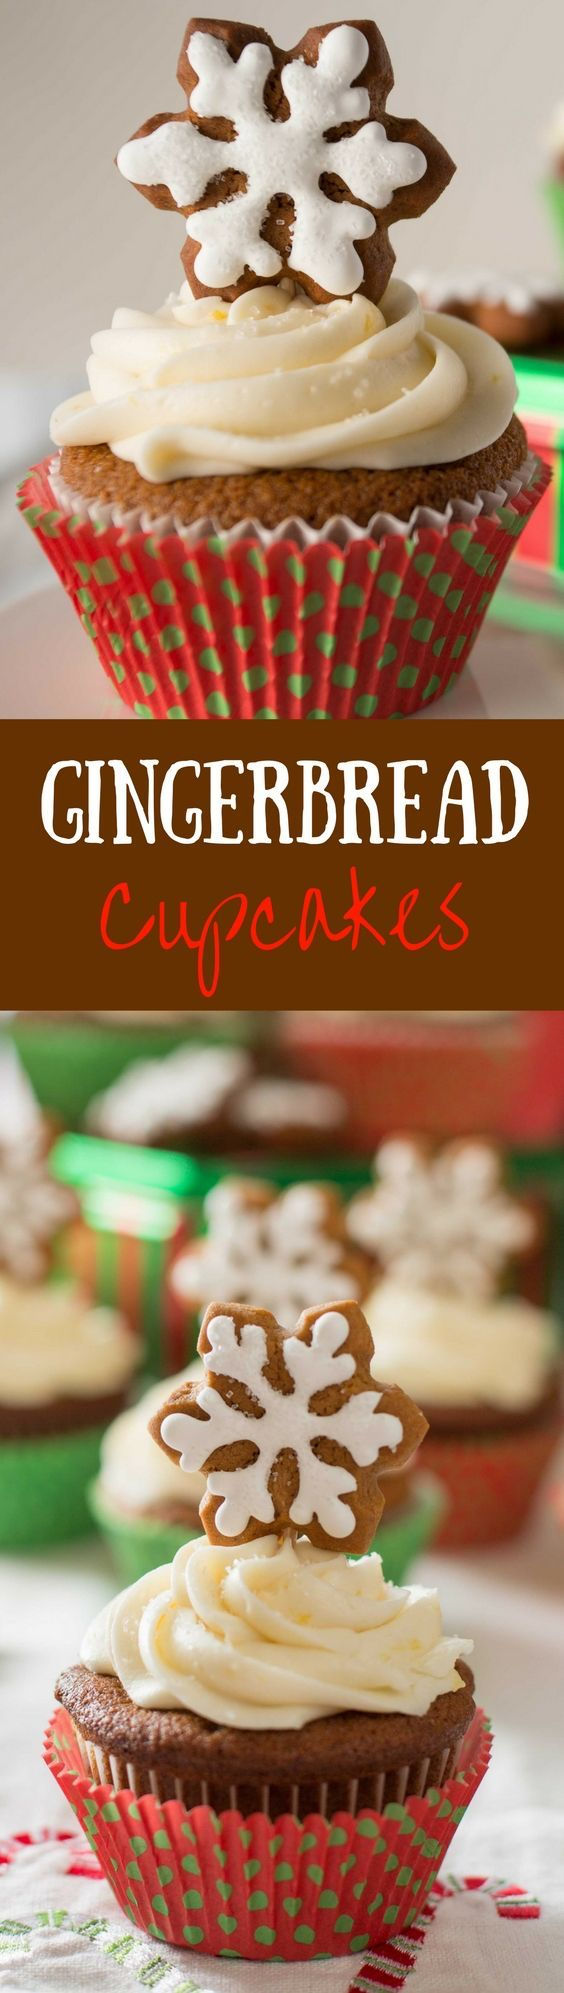 Gingerbread Cupcakes - A robust ginger flavored cupcake with a sweet lemon buttercream frosting. Topped with a gingerbread cookie these make a fun presentation for the holidays! www.savingdessert.com